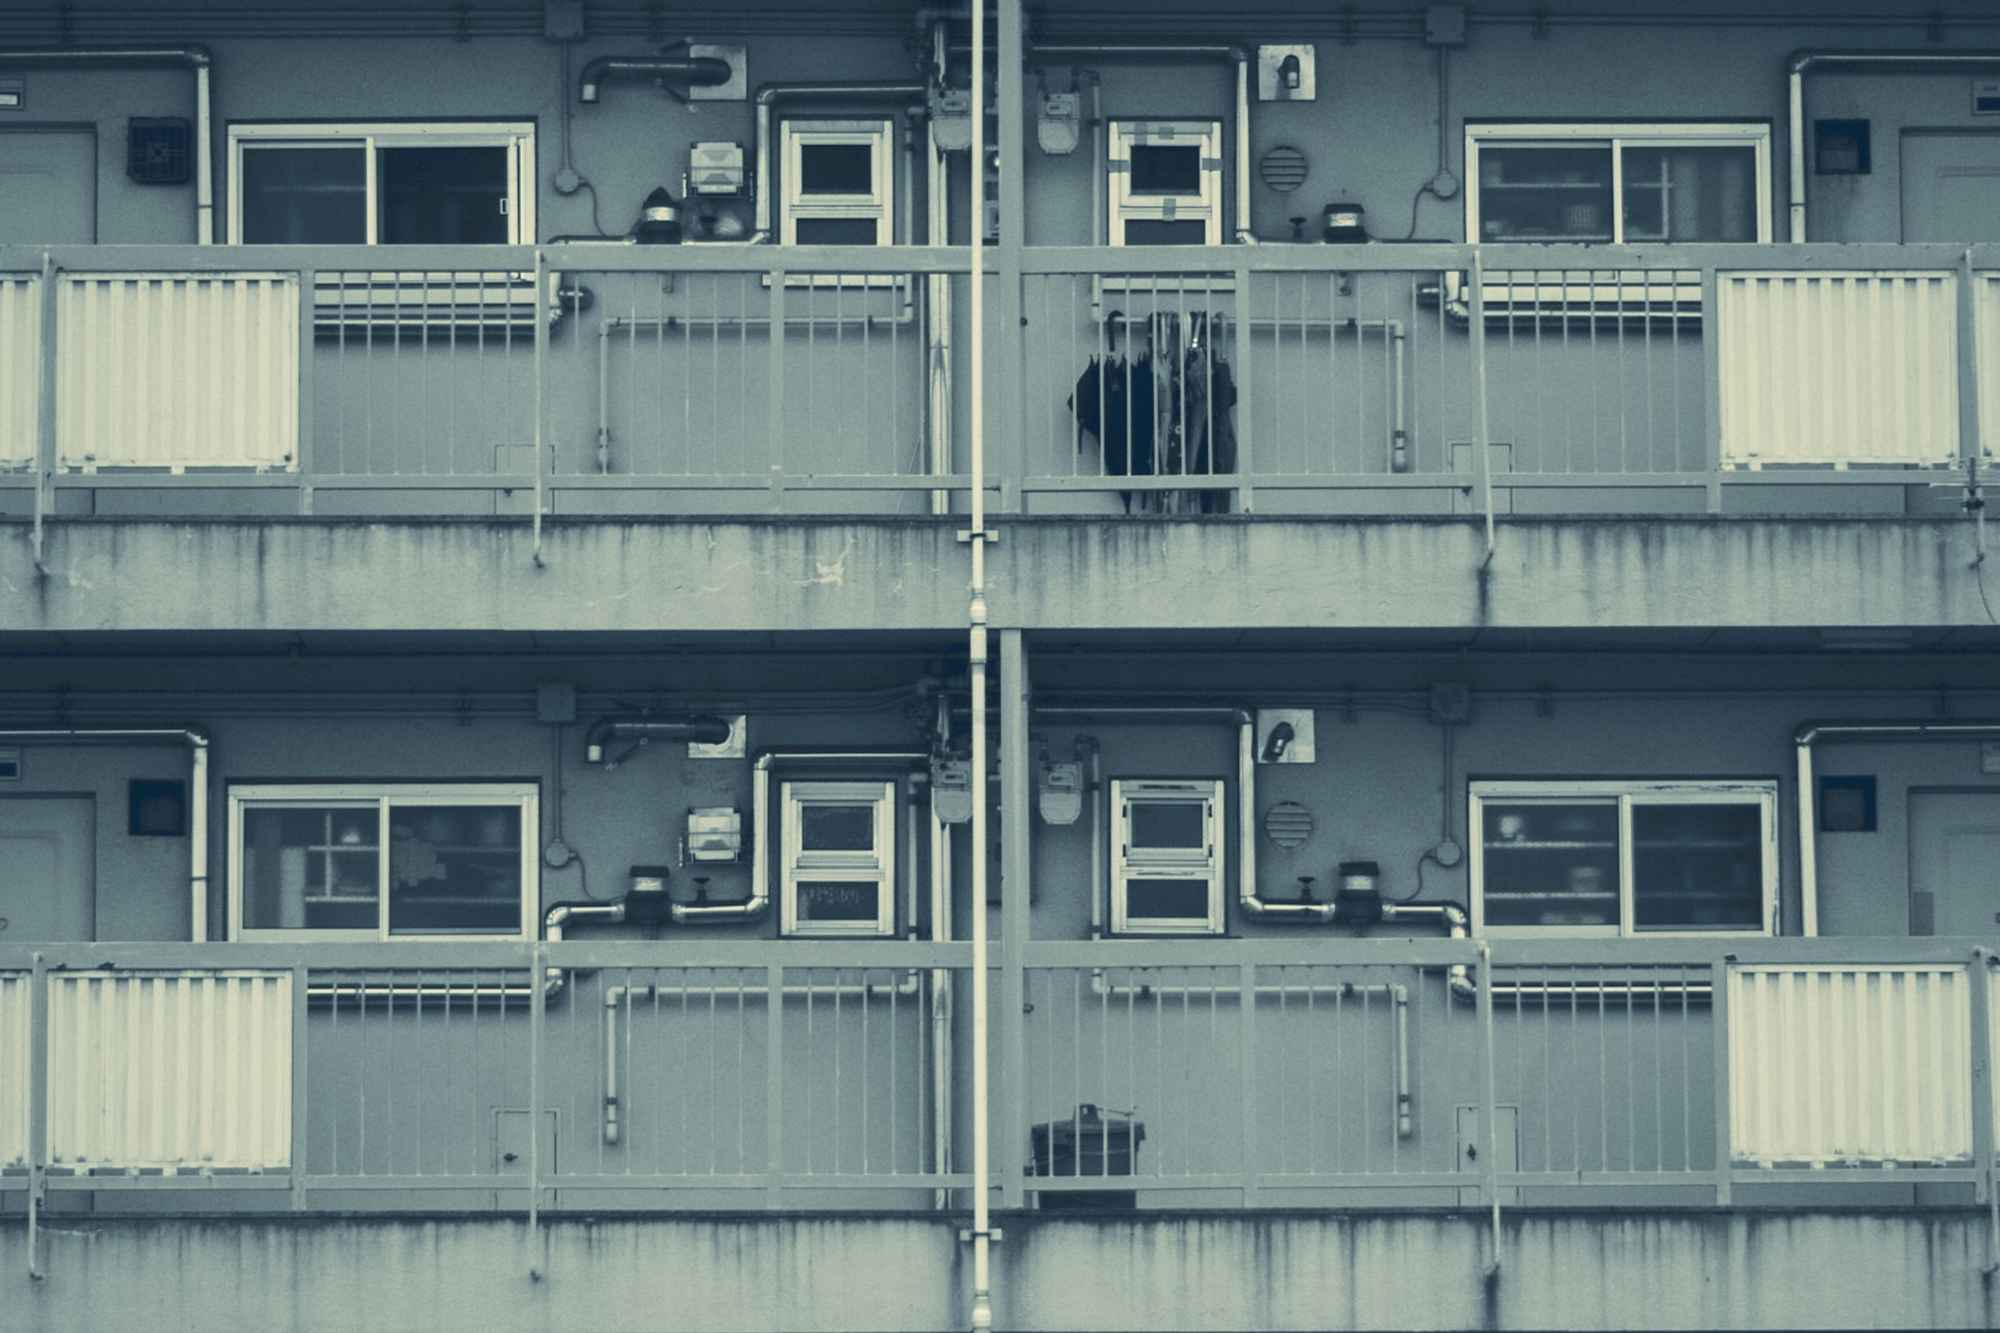 """Apartments in Japan"" by Richard, color modified ( https://www.flickr.com/richard777/ )"